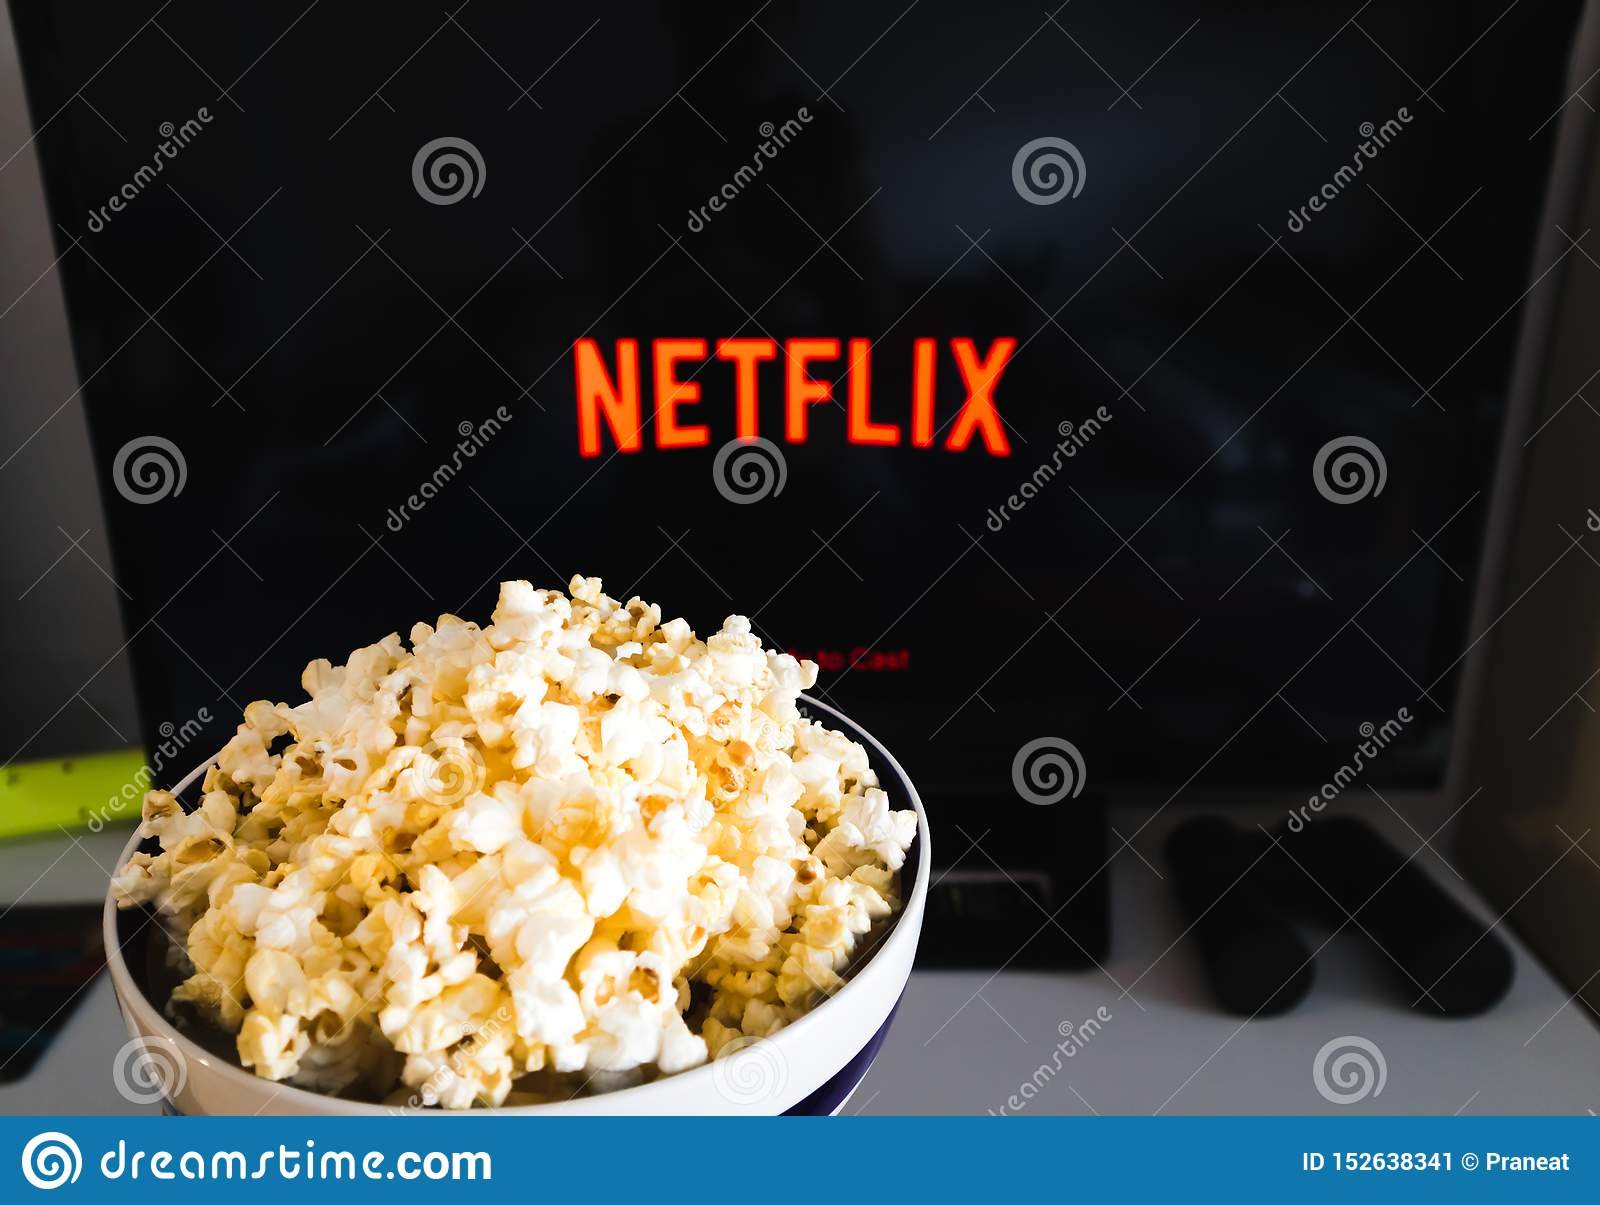 CHIANGMAI, THAILAND - JULY 7, 2019- Popcorn bowl and Netflix logo on Smart TV